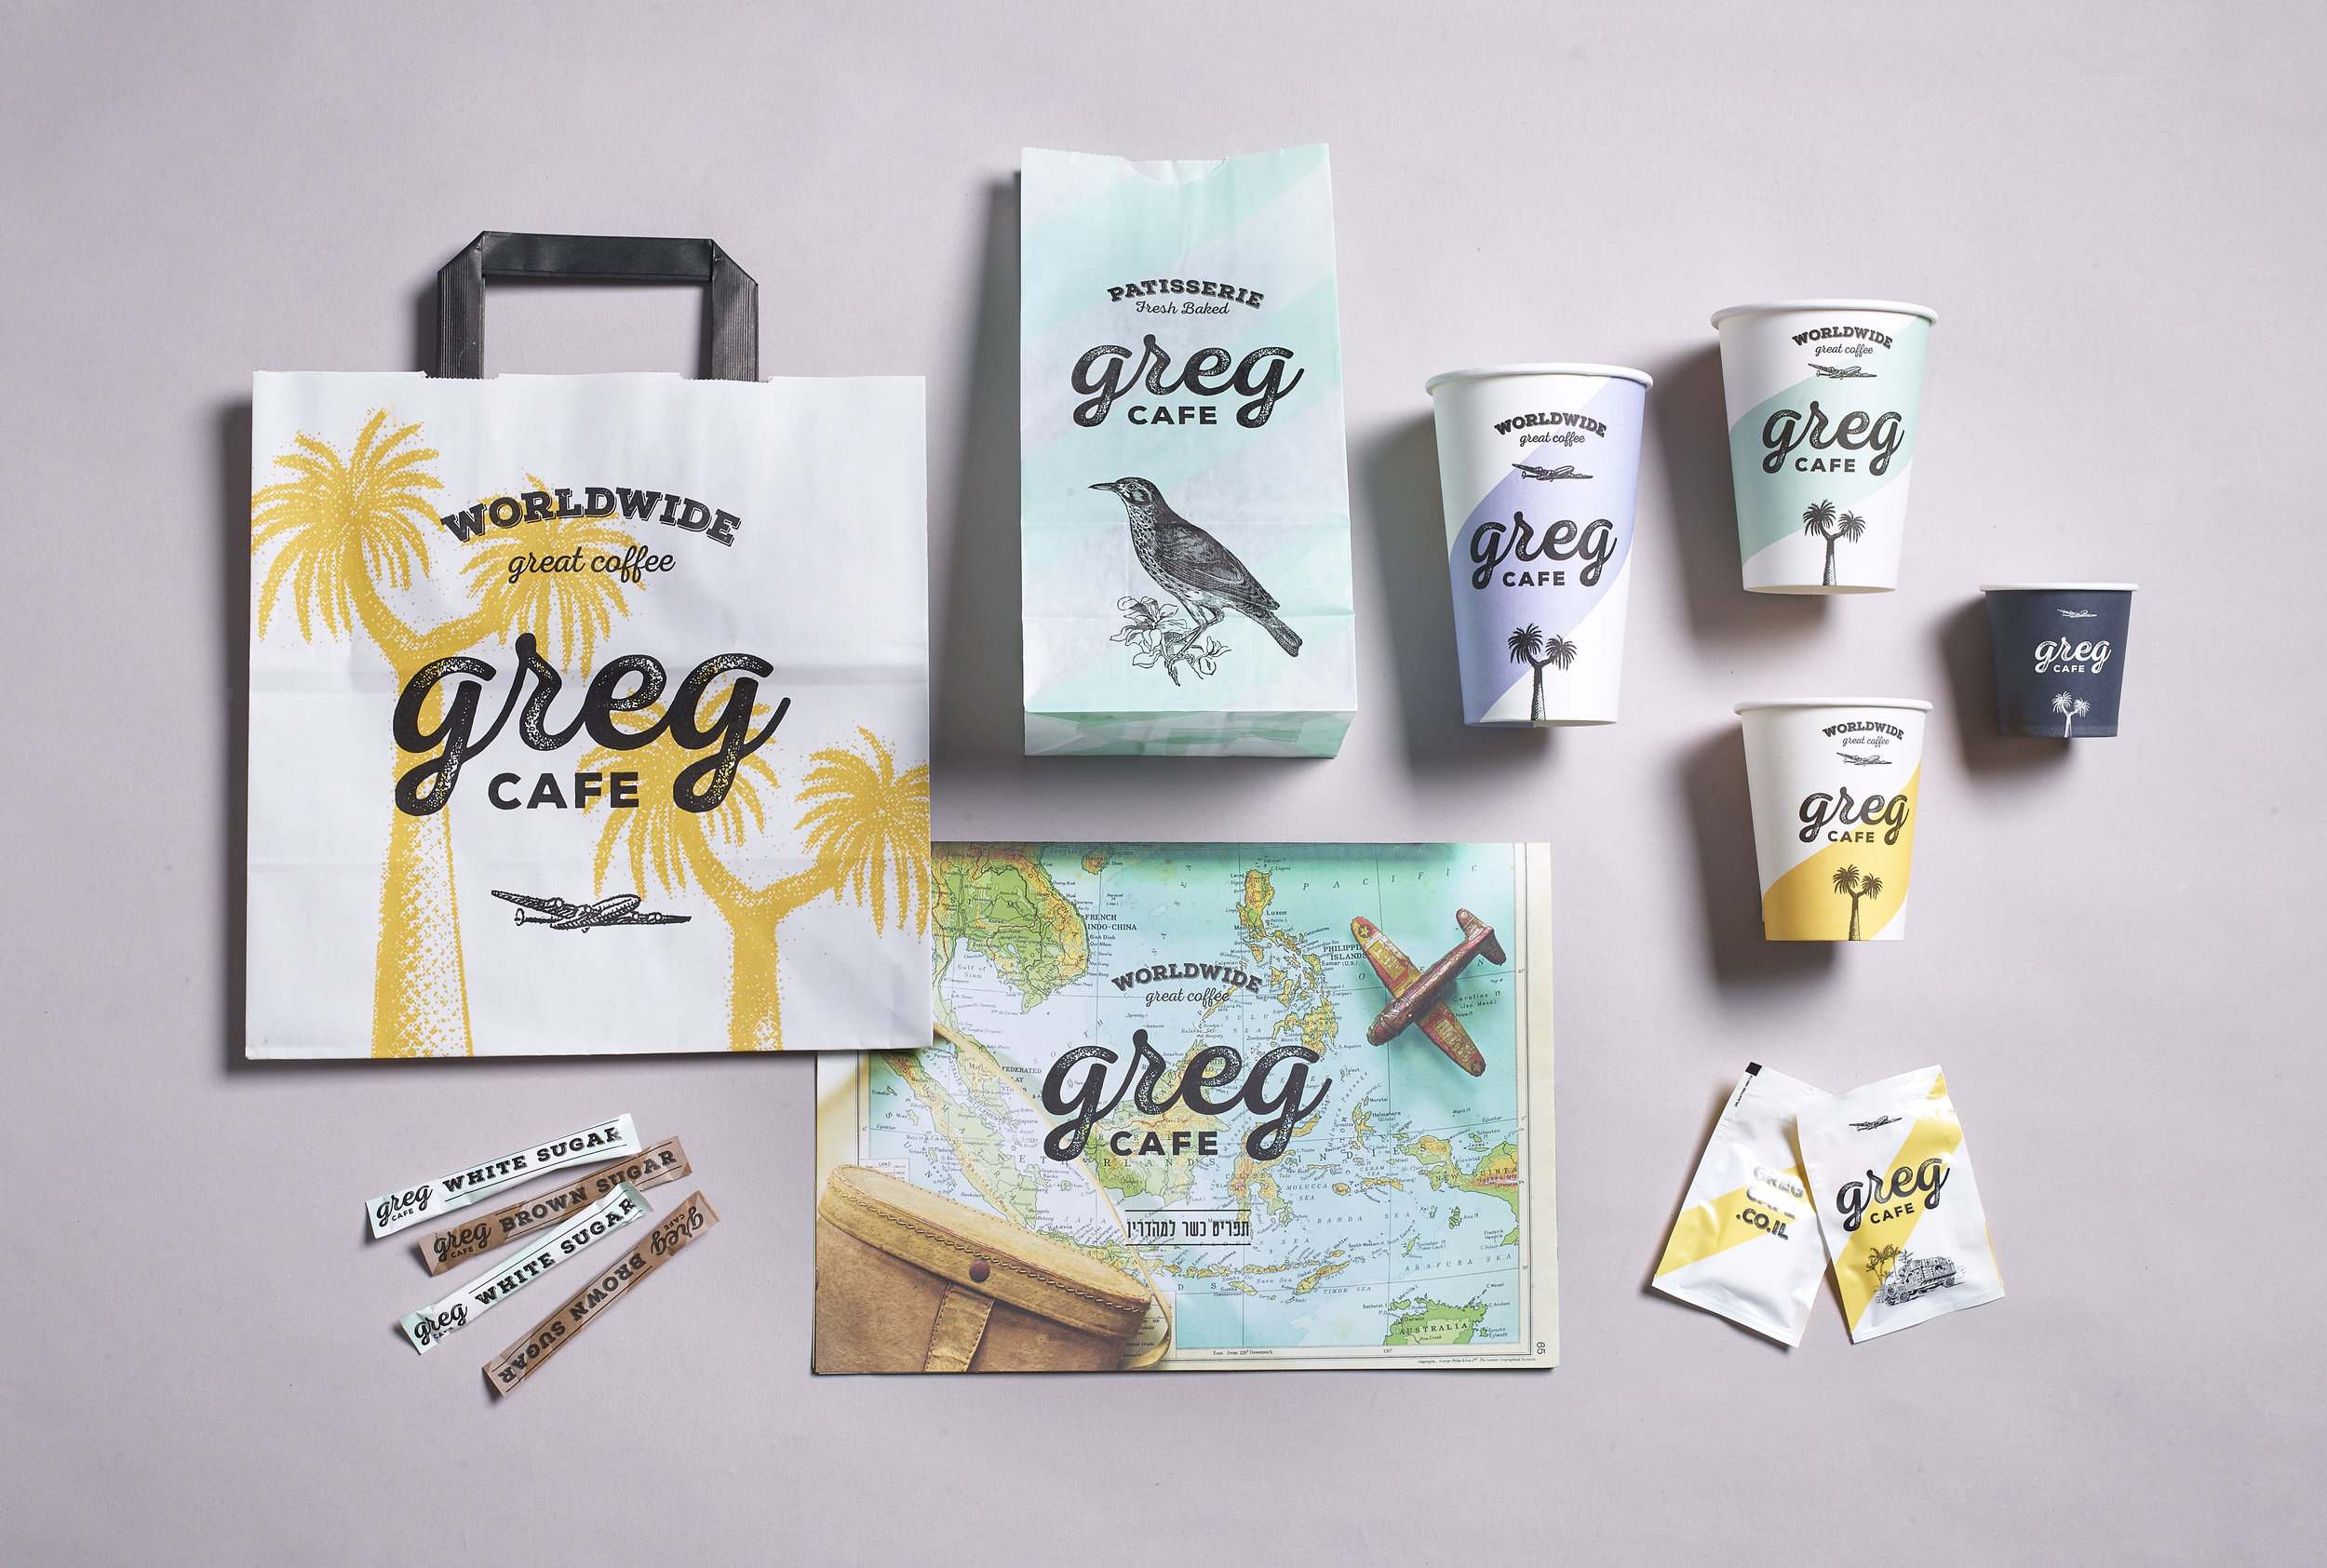 Branding for Greg Cafe, a Chain of Nationwide Coffee Shops / World Brand Design Society